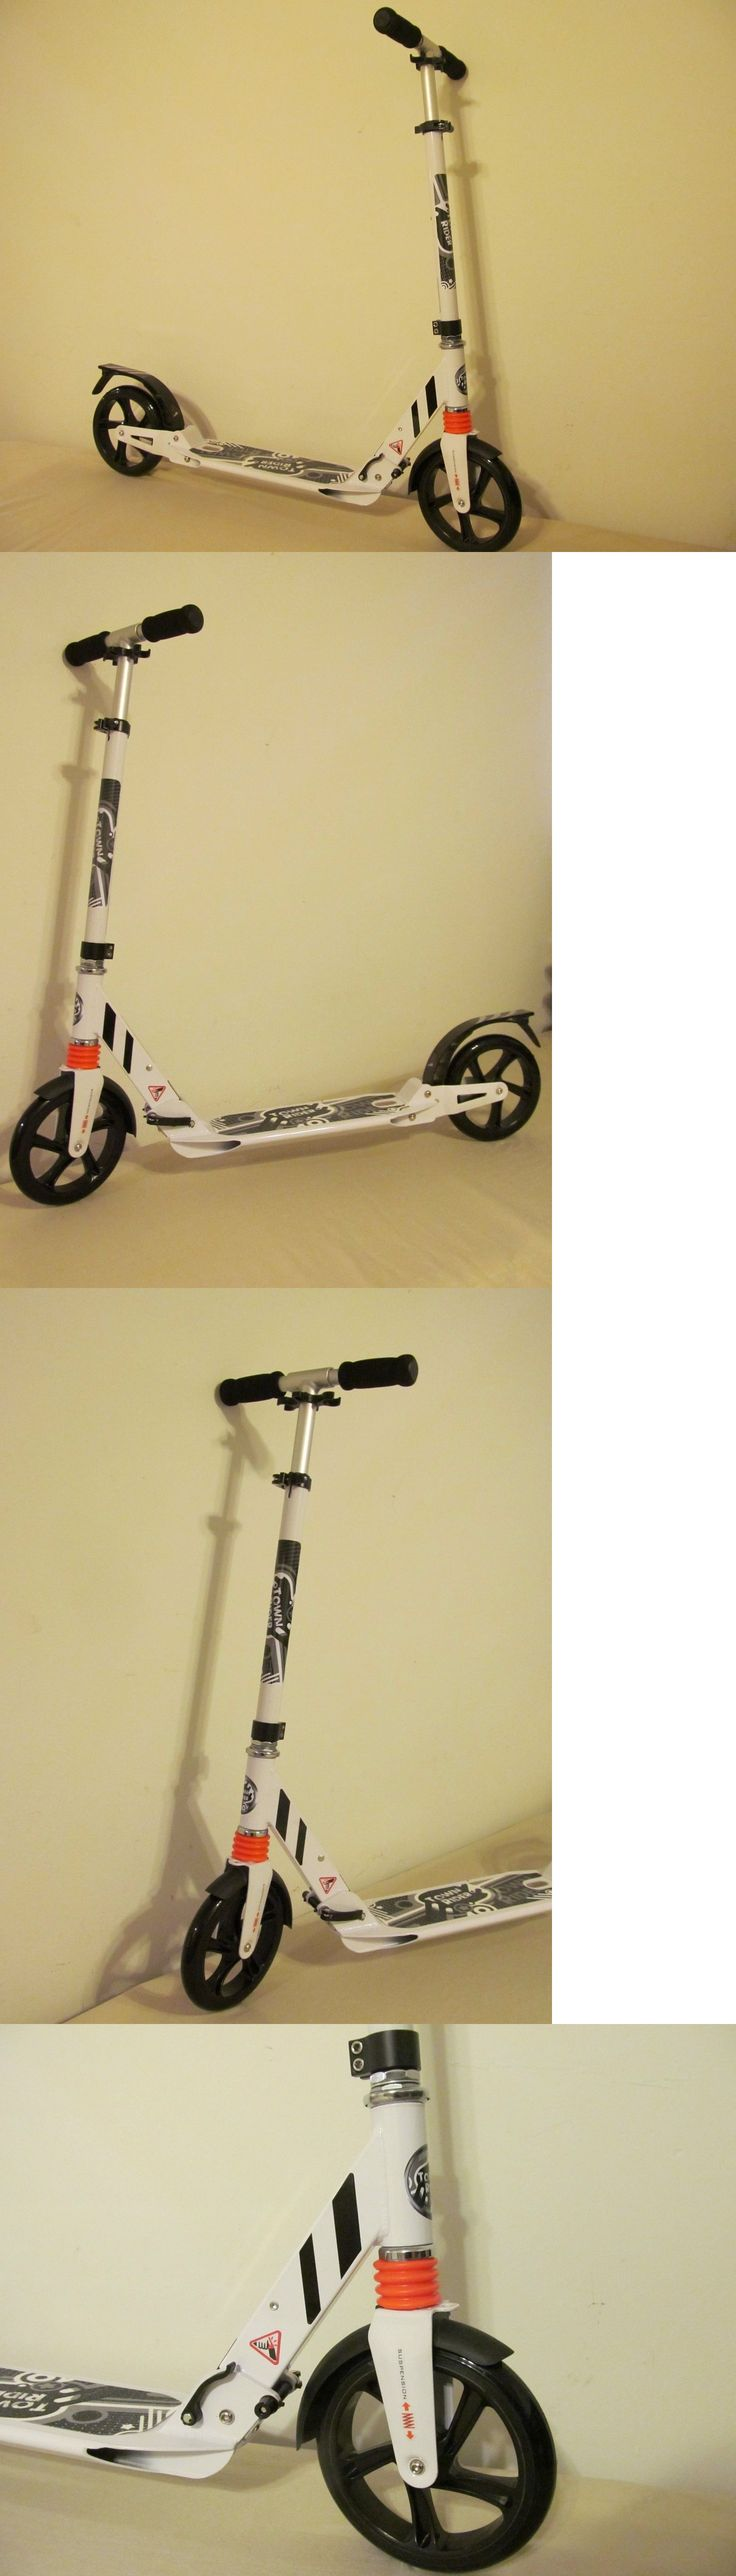 Kick Scooters 11331: Brand New Town Rider Big Wheels Adult Kick Scooter White Portable W Suspension -> BUY IT NOW ONLY: $59.99 on eBay!